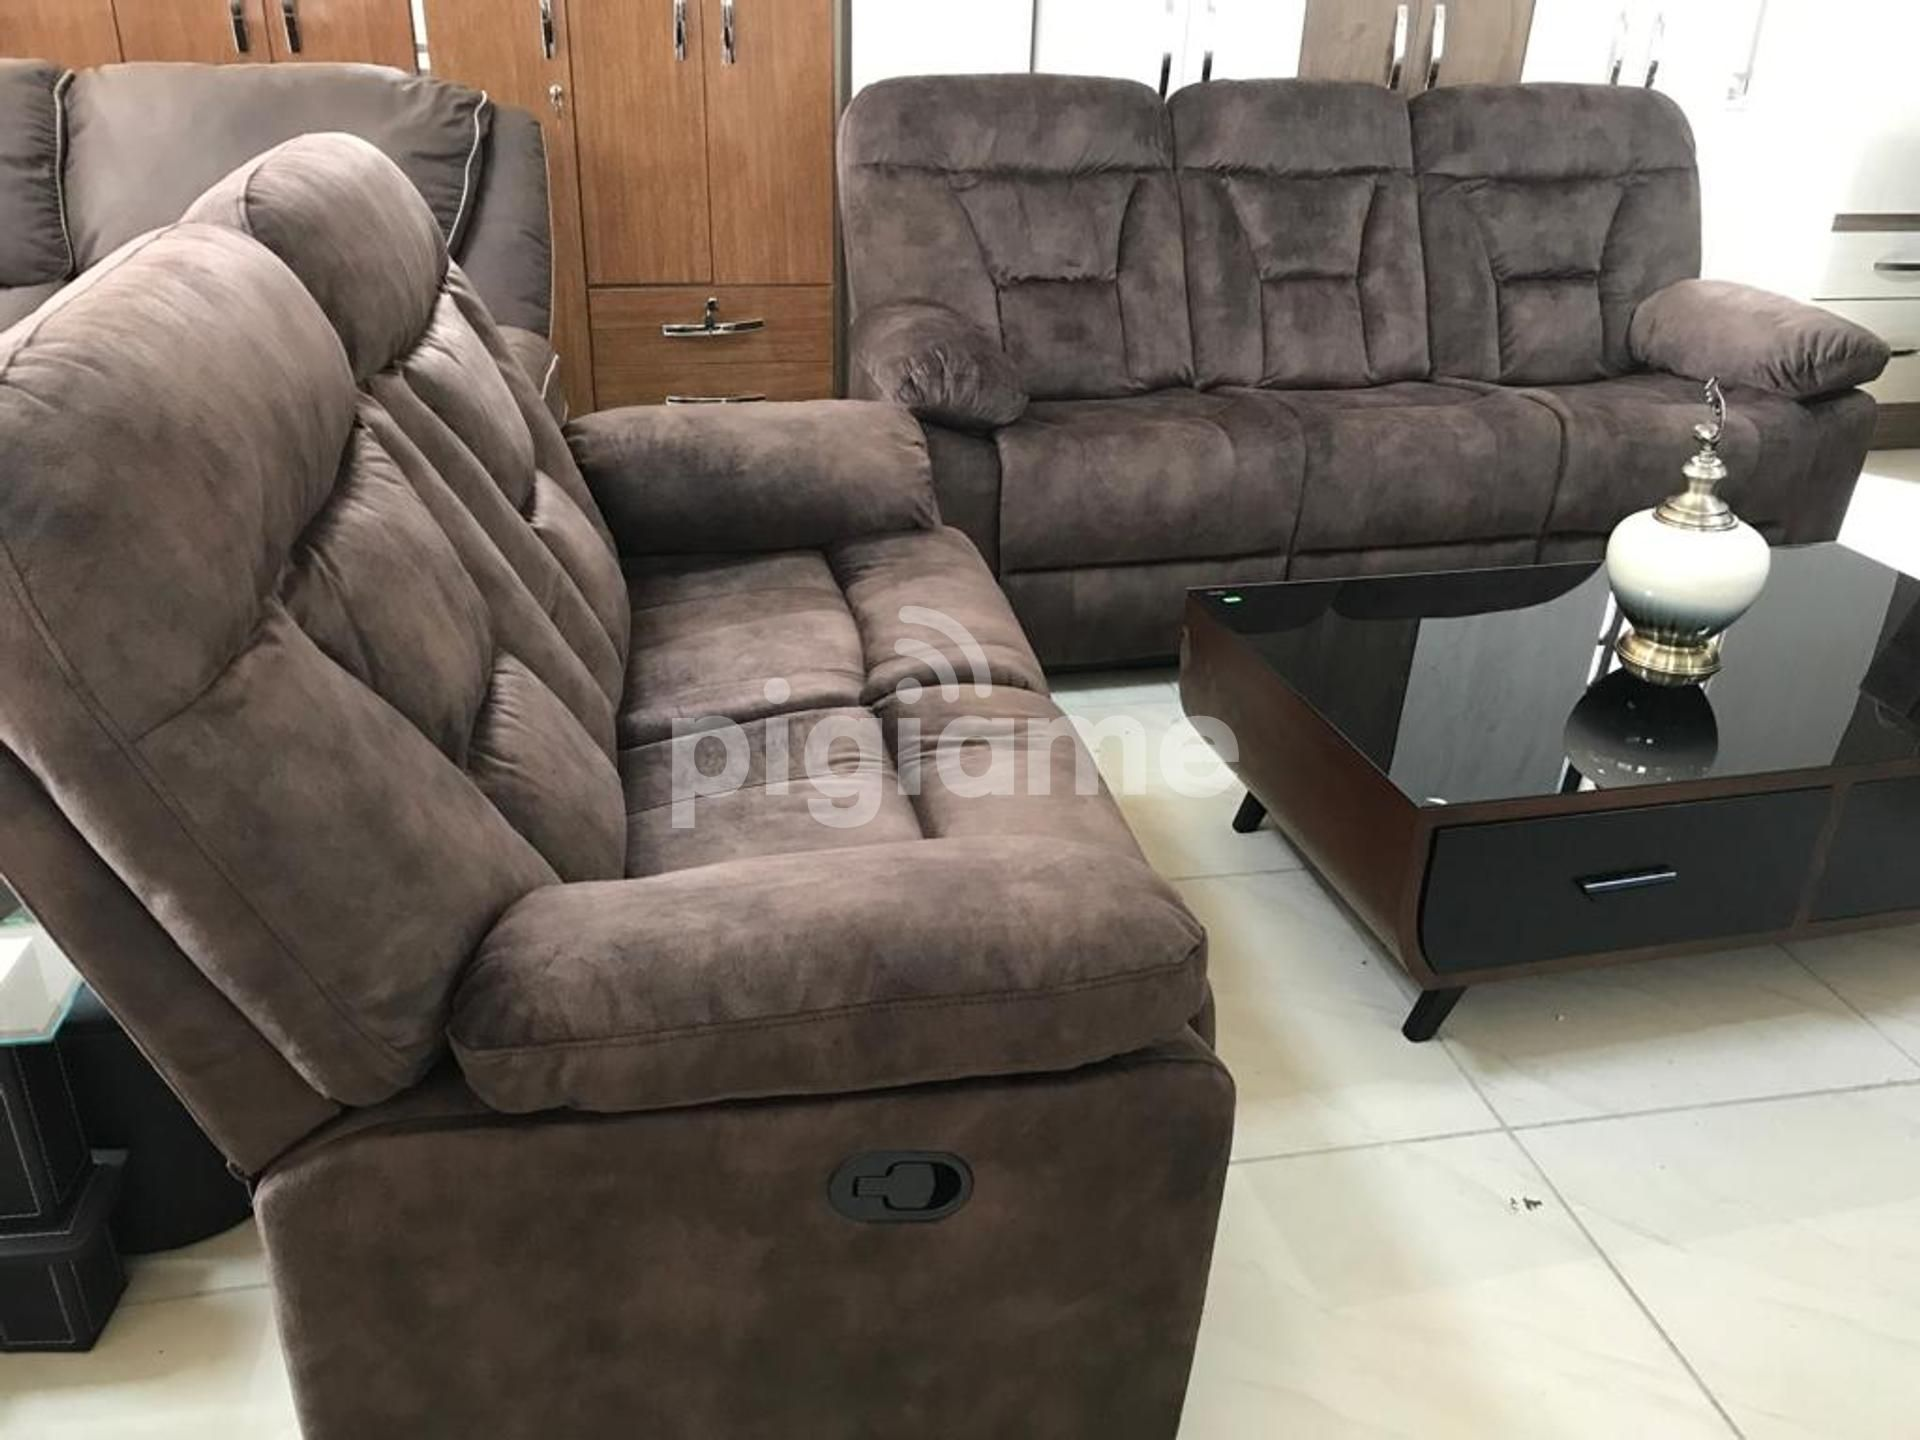 Imported Sofa Sets In Kenya In 2020 Sofa Set Fabric Sofa Sofa Furniture